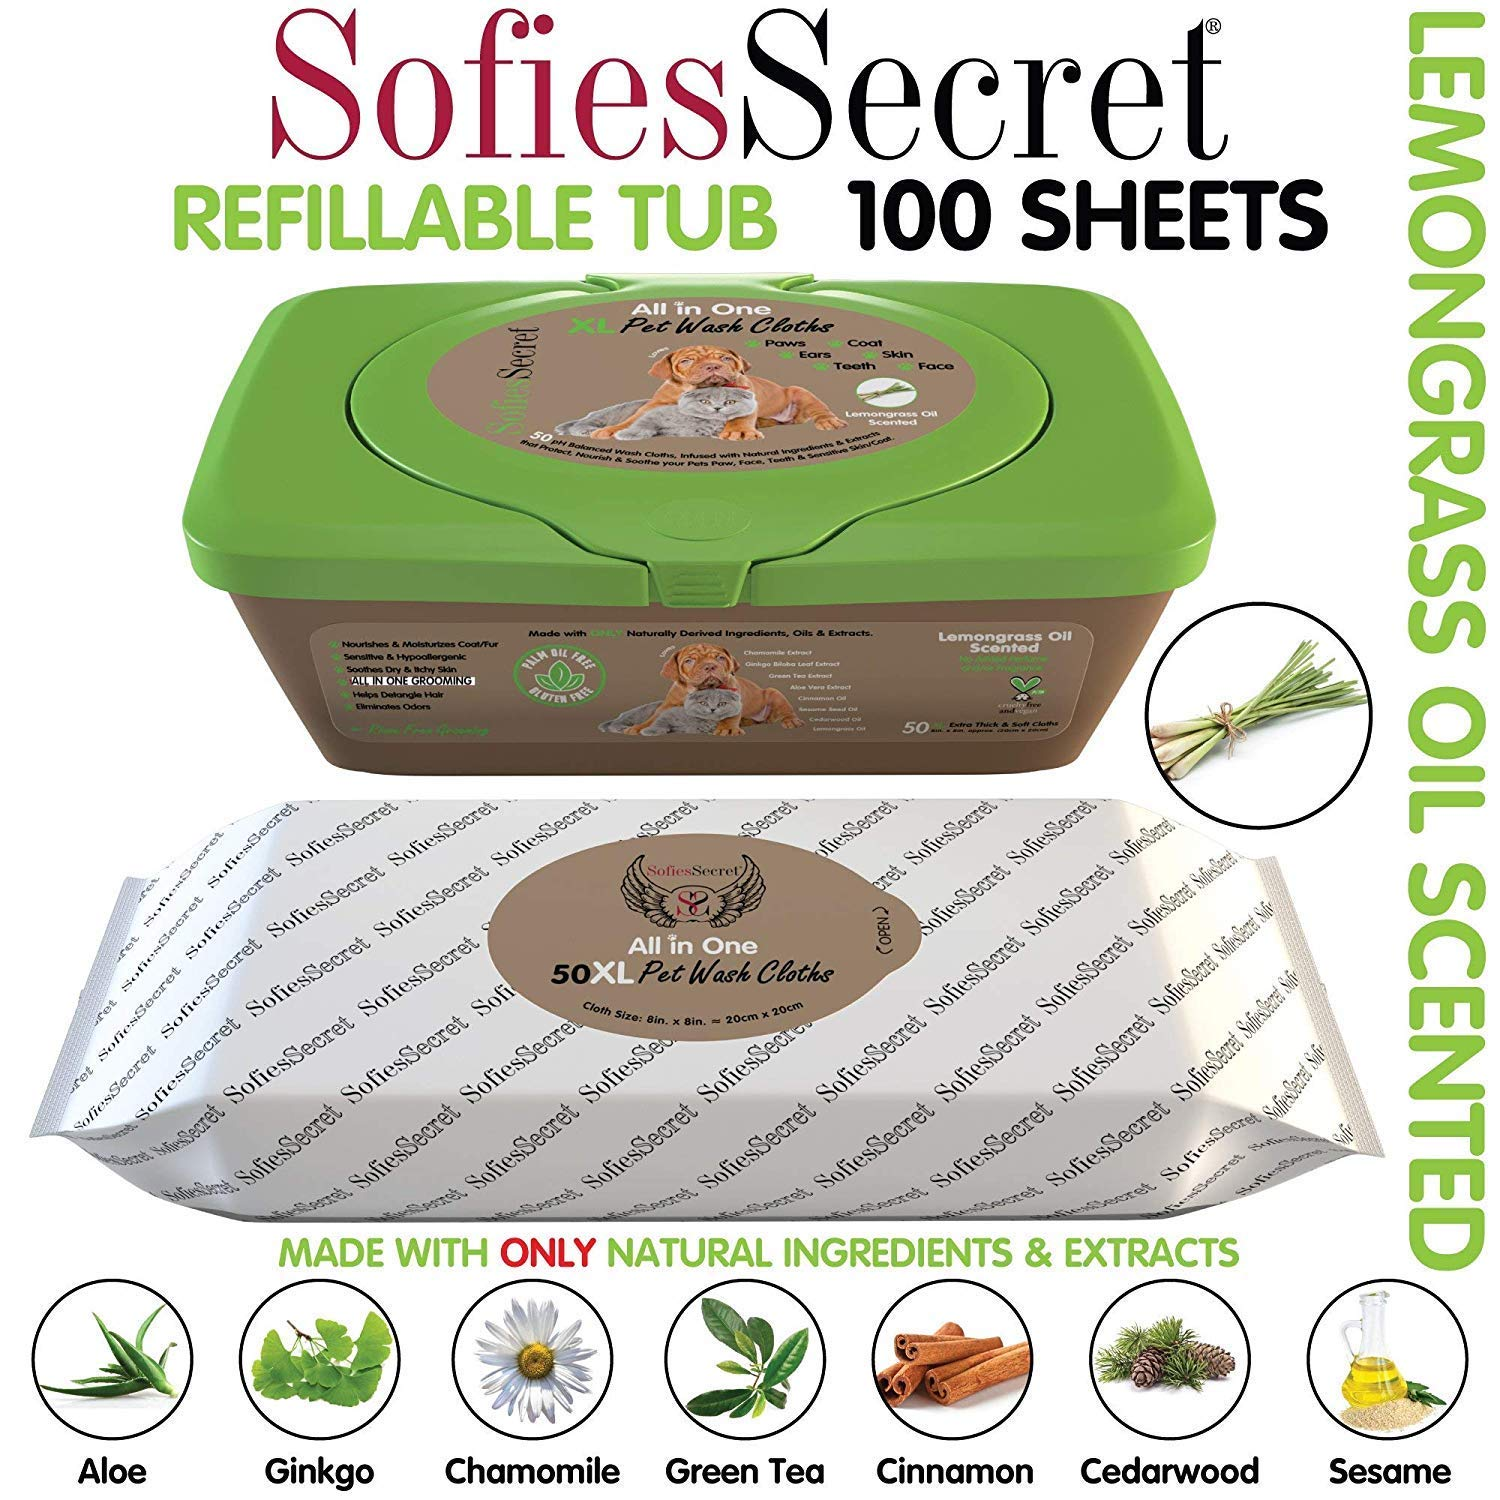 SofiesSecret XL PET Wipes, 100 XL, Lemongrass Oil, All in One Grooming, for Paws, Coat, Skin, Face, Ears and Teeth, Made with only Naturally derived Ingredients, Oils & Extra, Cruelty Free and Vegan